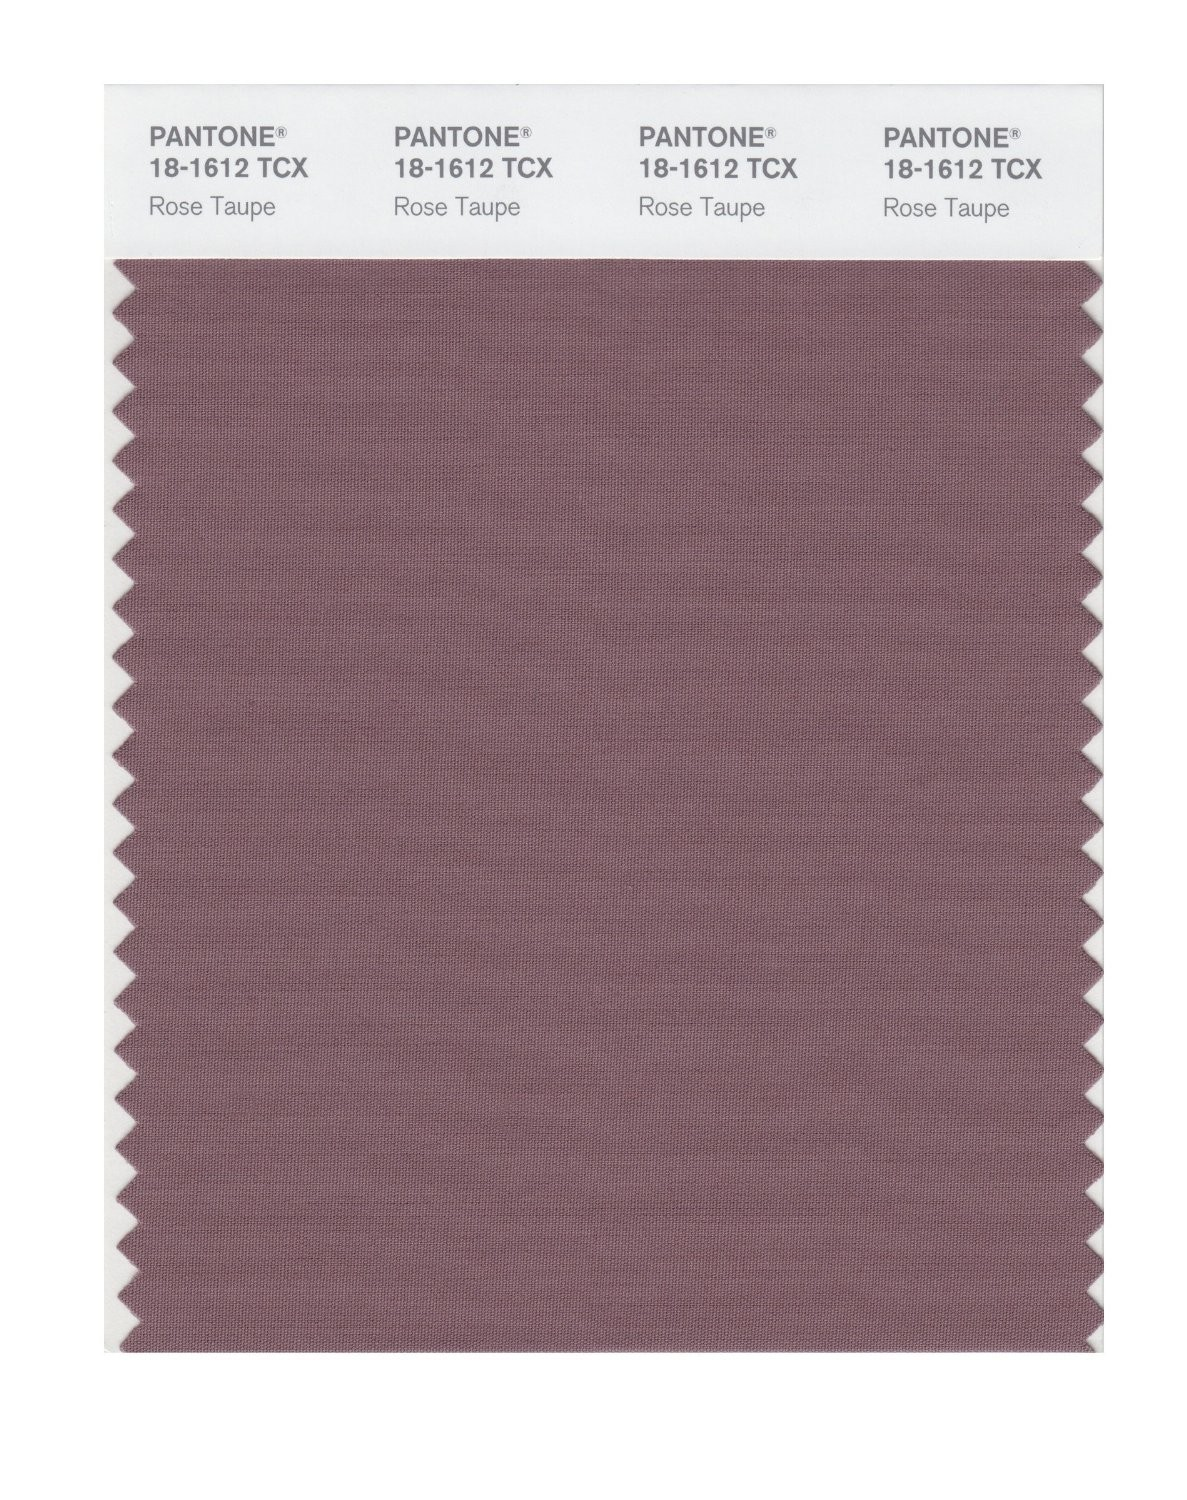 Pantone 18-1612 TCX Swatch Card Rose Taupe